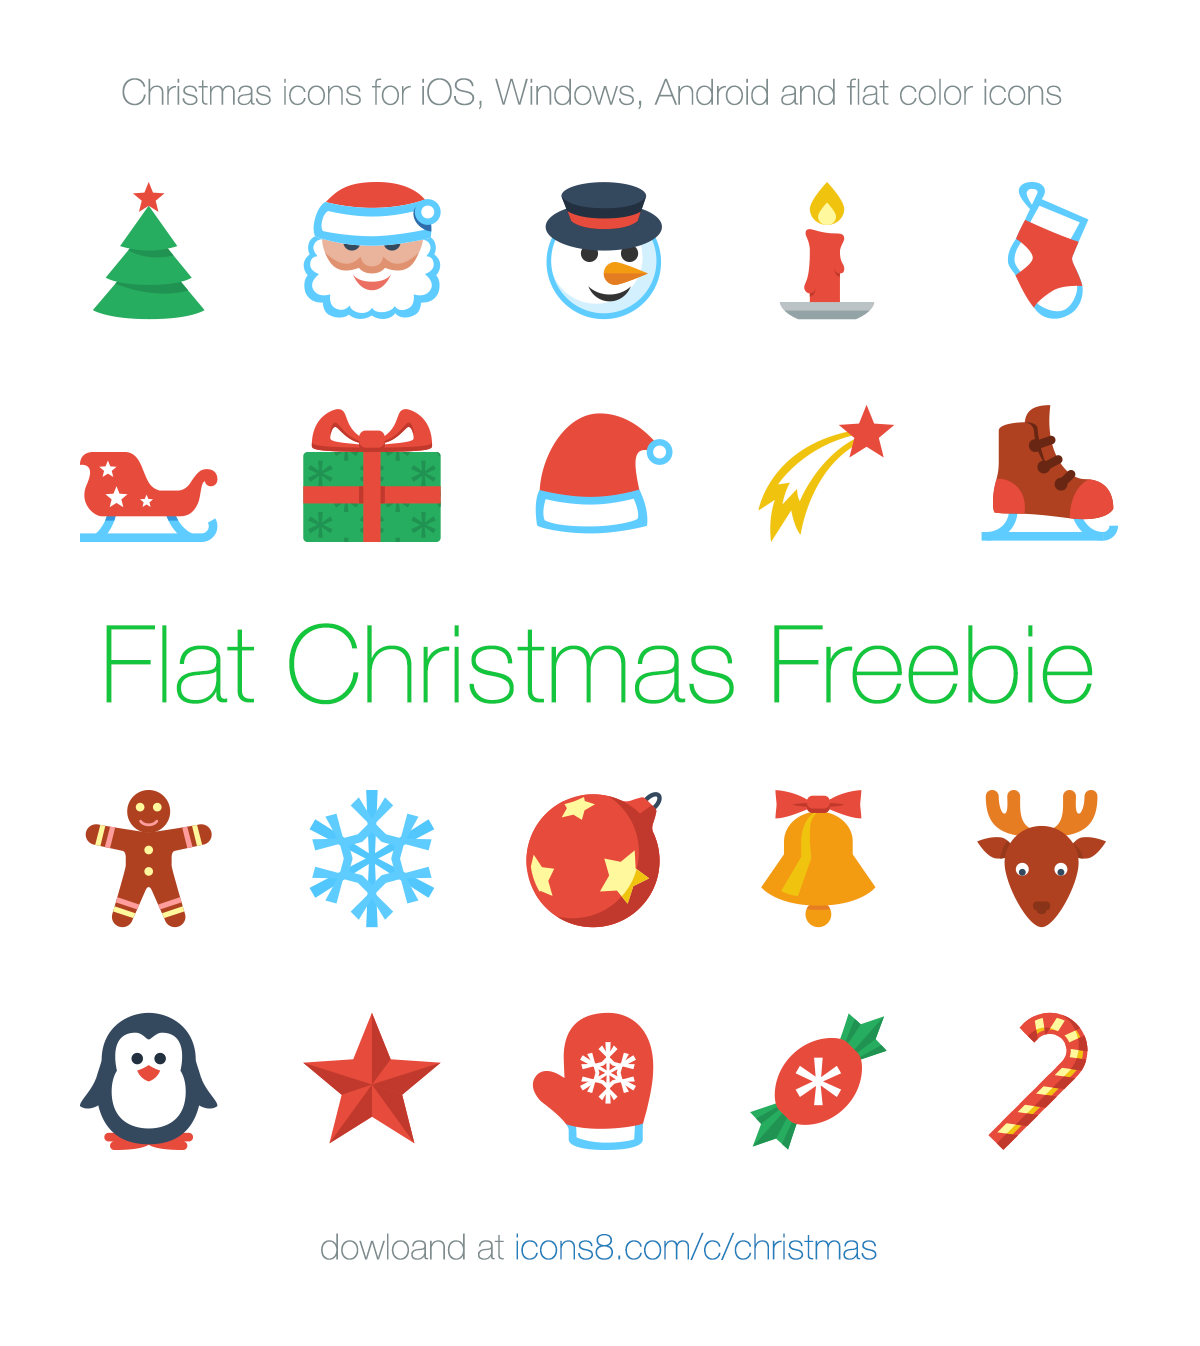 Ultimate Christmas icons for iOS, Windows, Android and